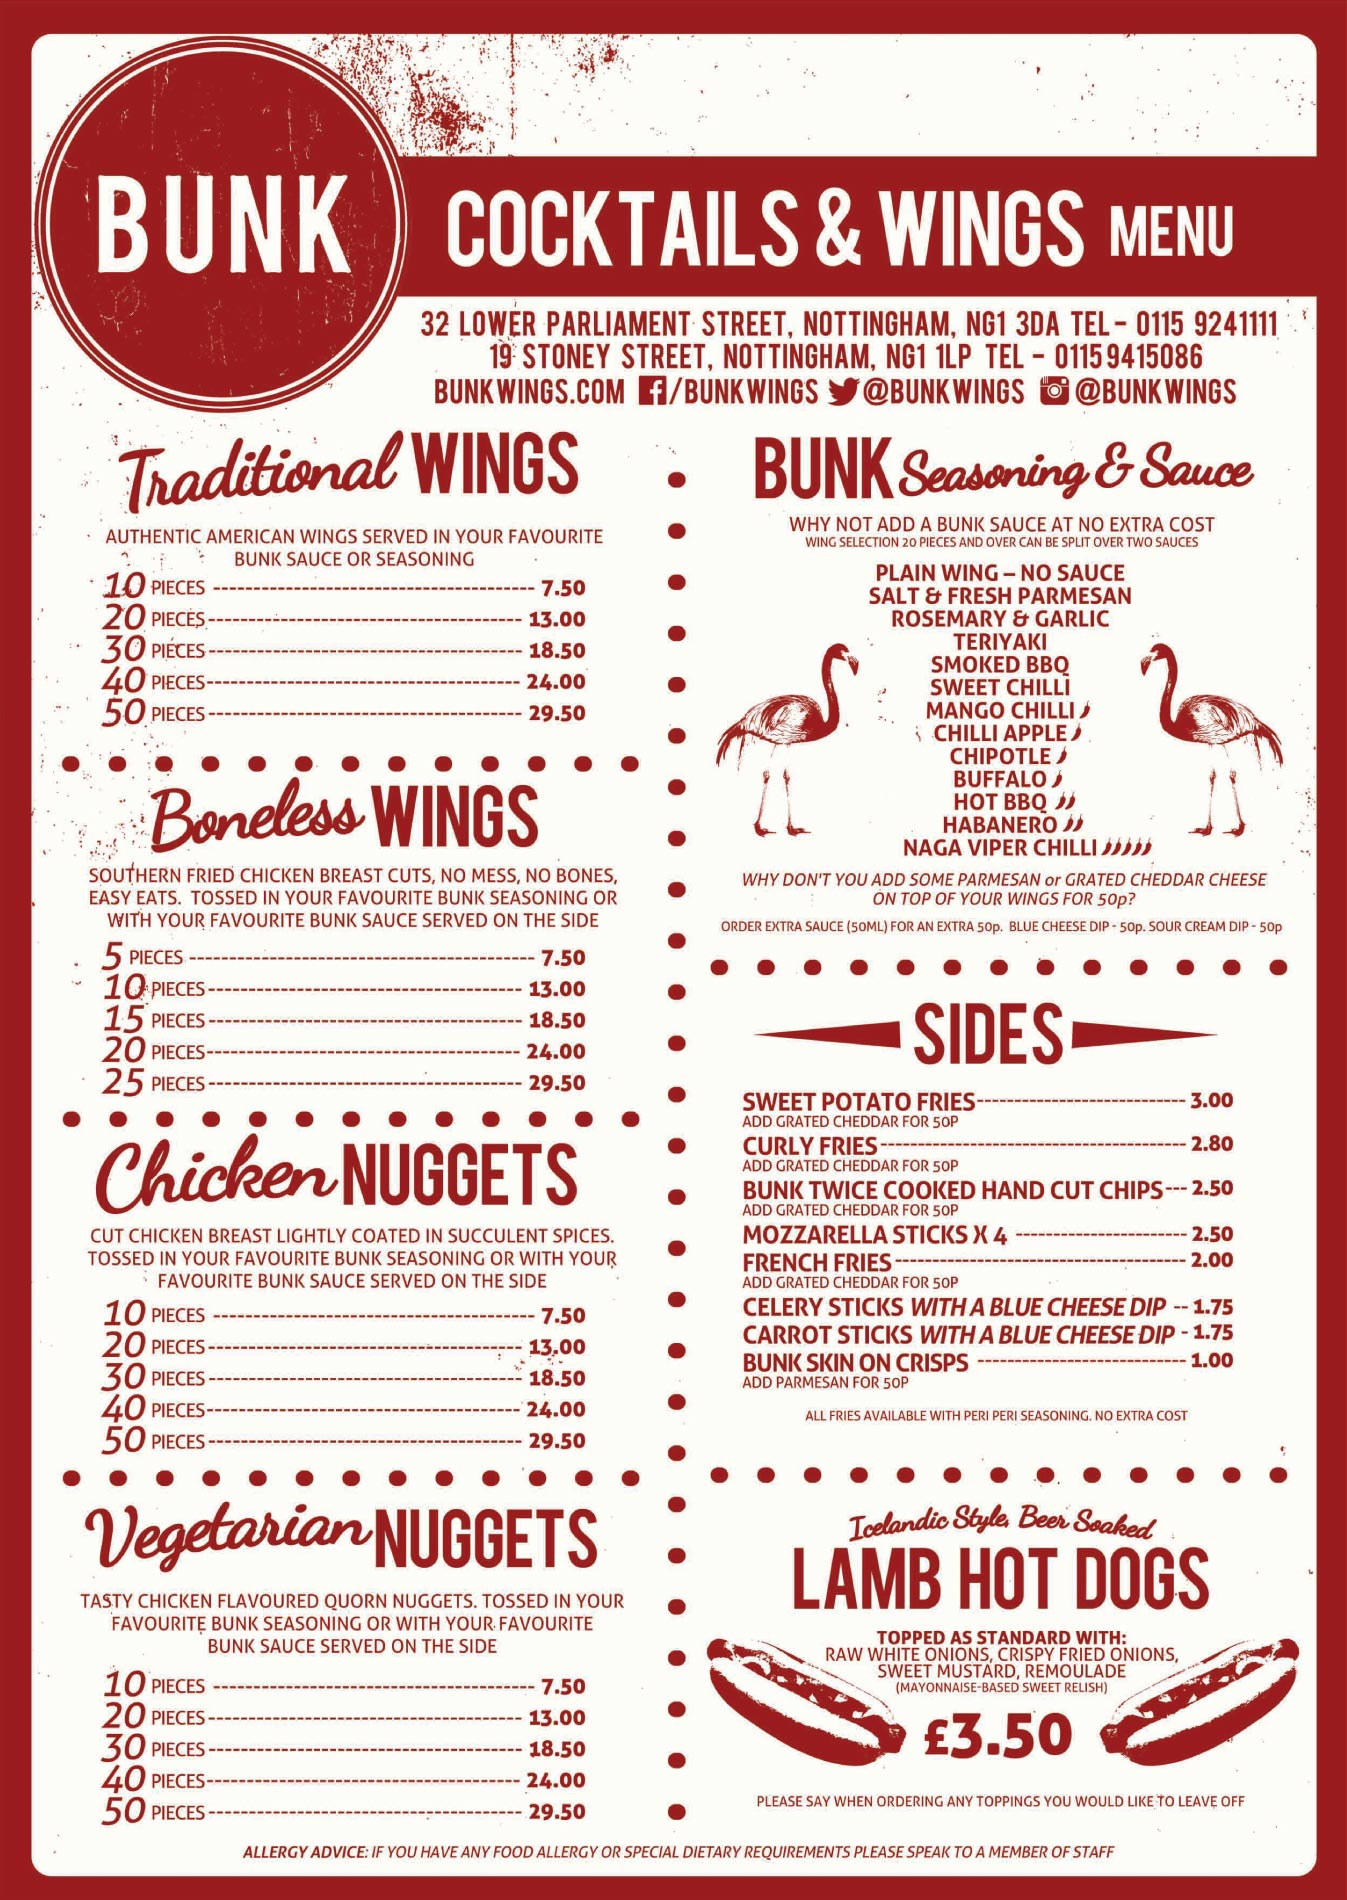 bunk-cocktails-and-wings-nottingham-wings